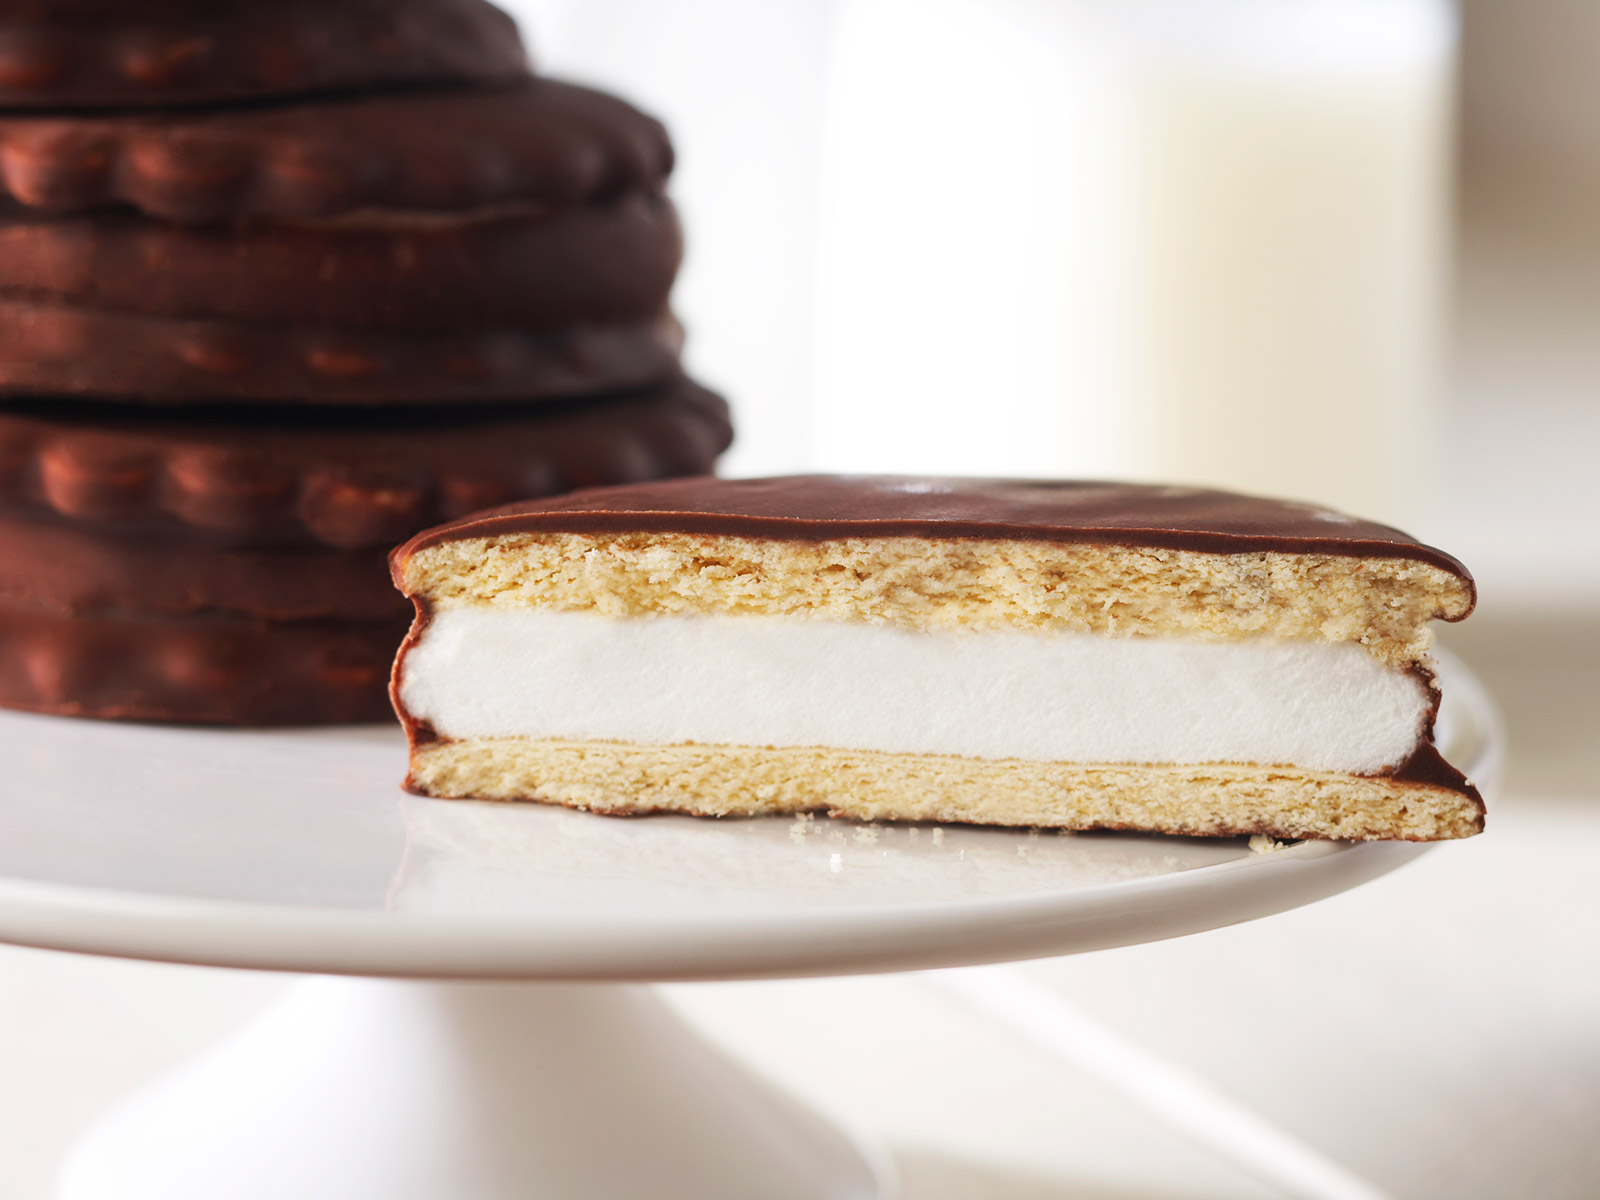 Where Will You Be When the Giant MoonPie Drops This New Year's Eve?